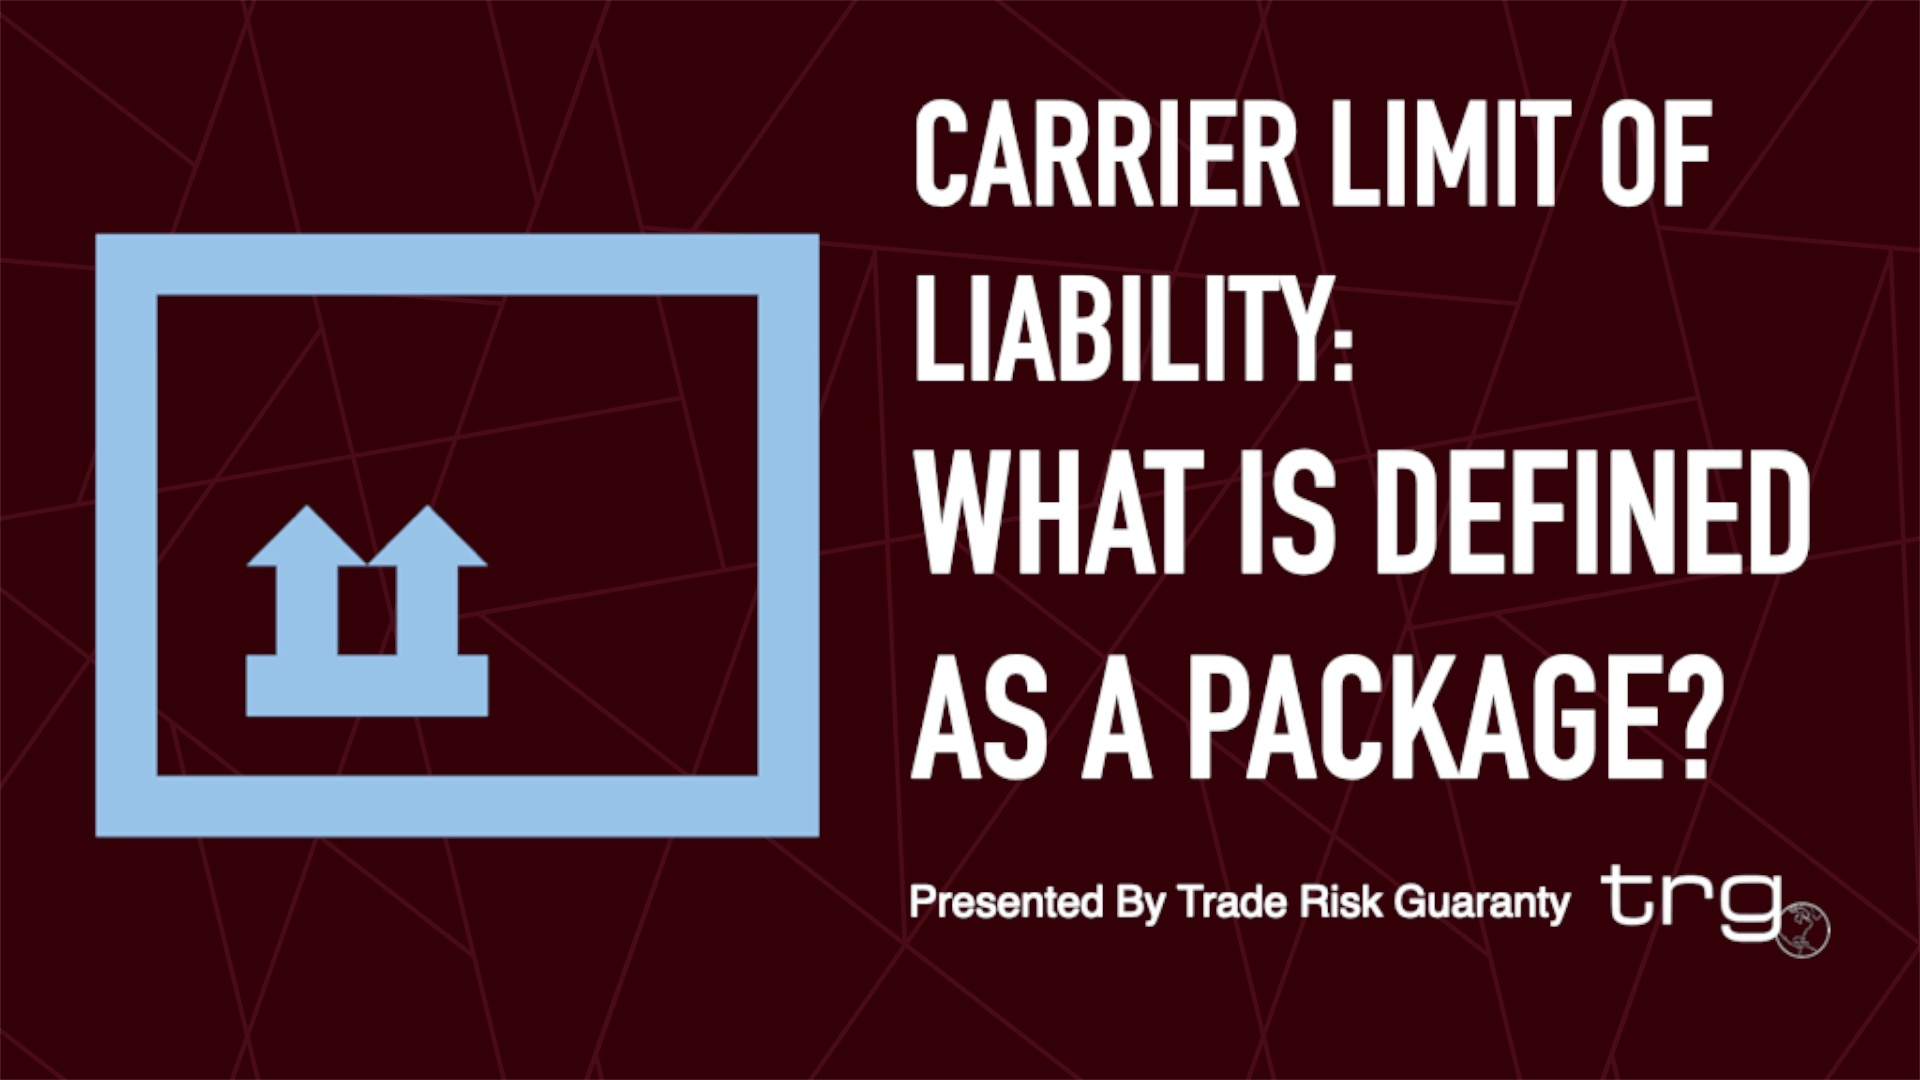 [Video] What is Defined as a Package? | Carrier Limit of Liability